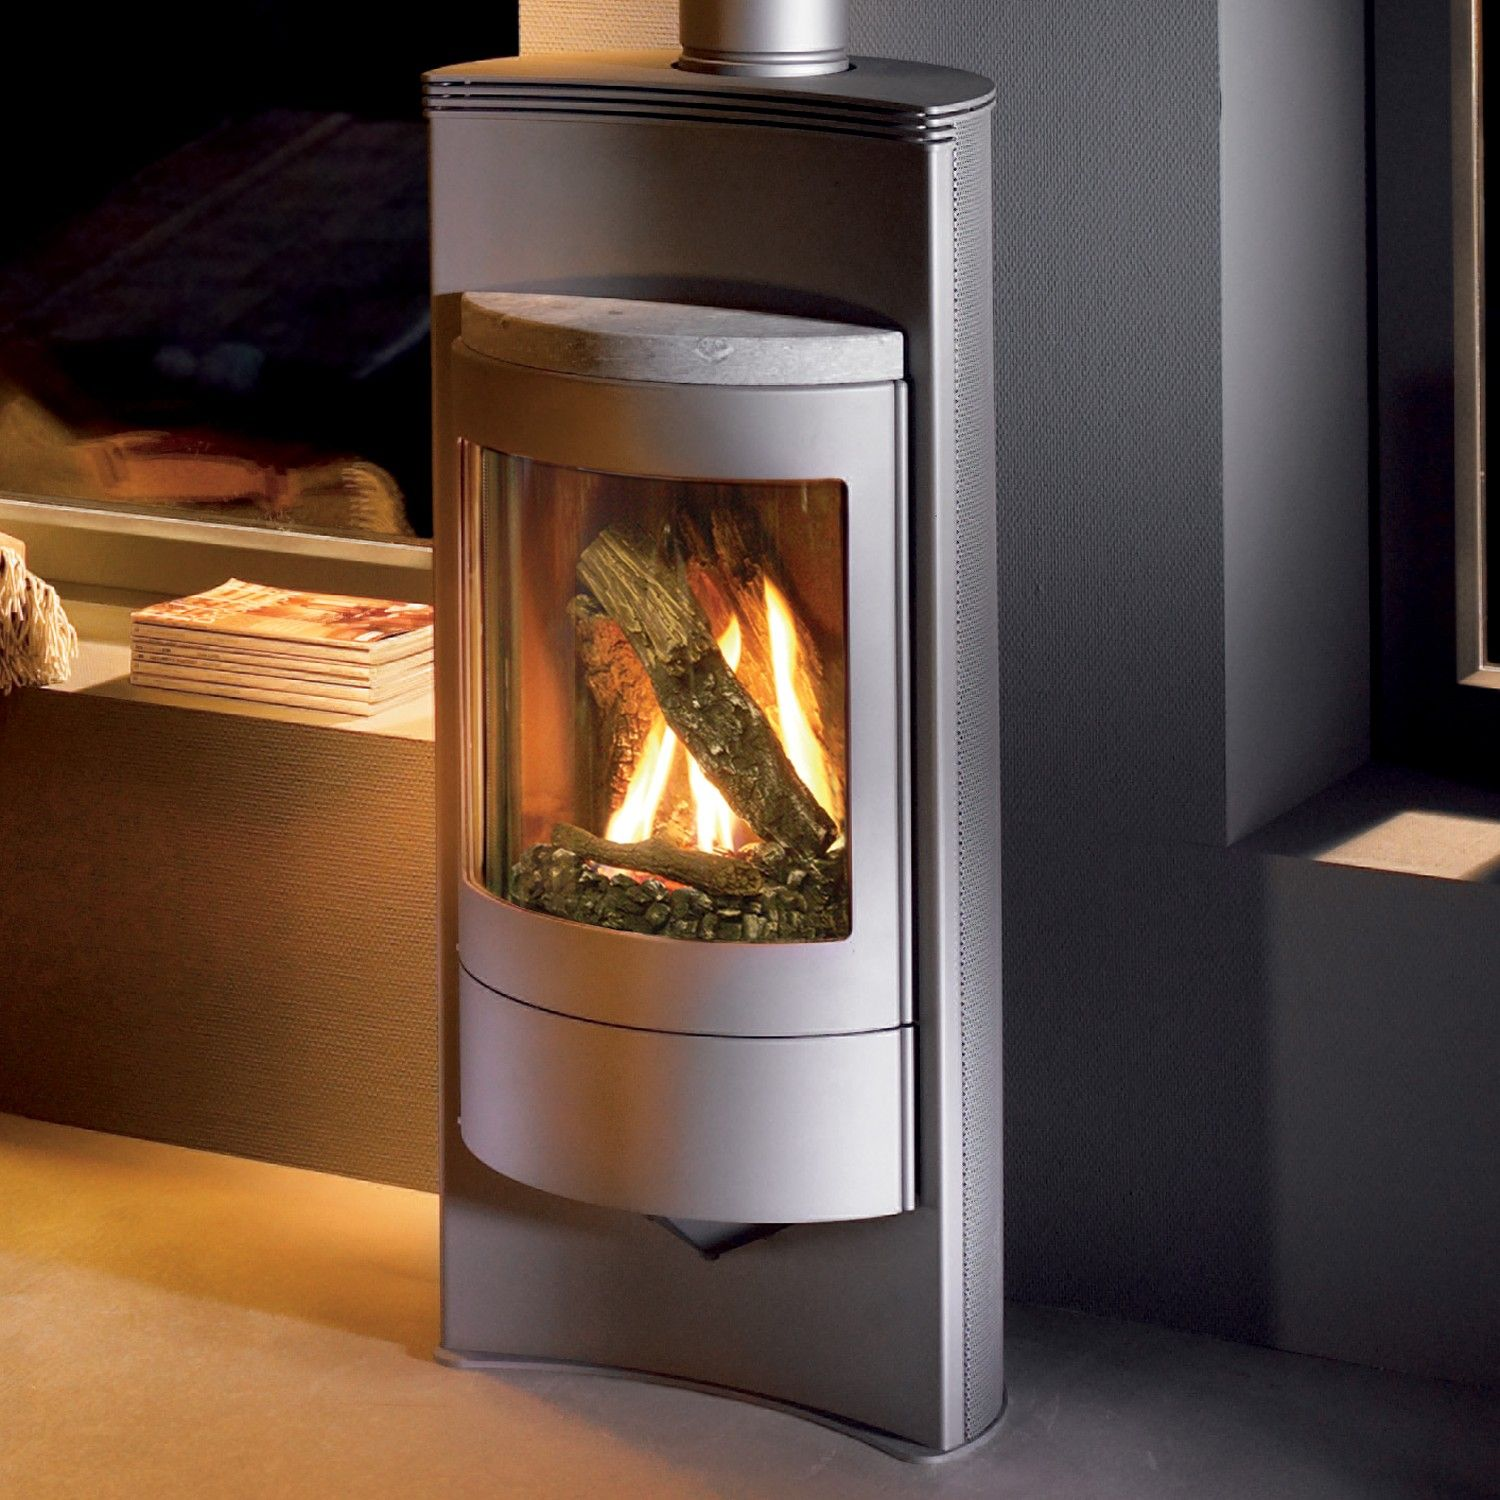 category to gas excellent uk buy value from online conventional stoves fireplace stove hereford